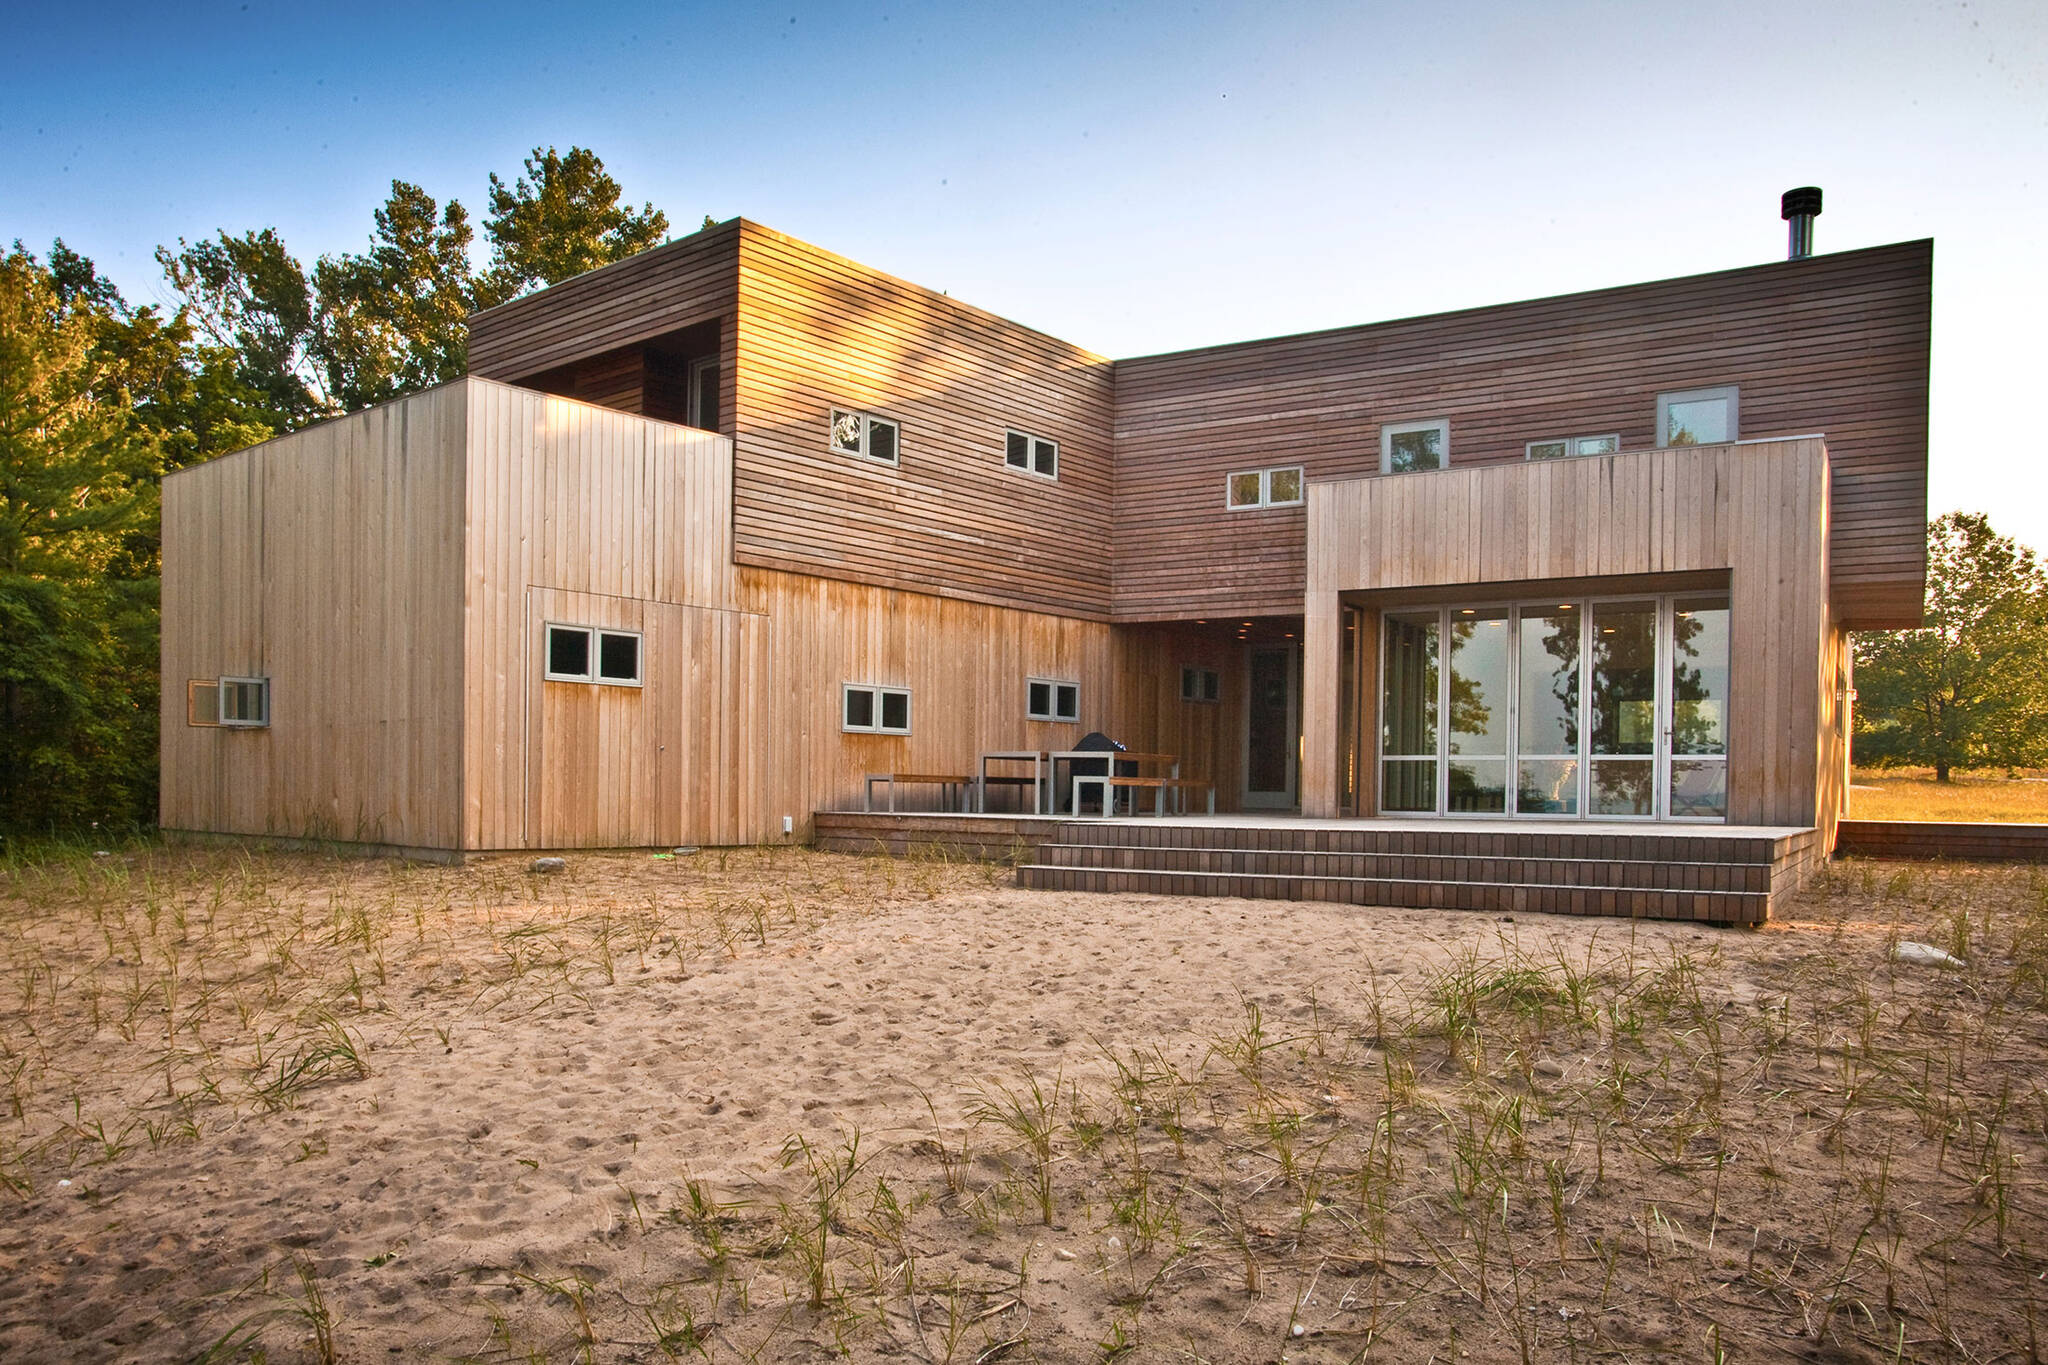 Wooden cladding facade of the sustainable lake house project in Omena, Michigan designed by the architecture studio Danny Forster & Architecture